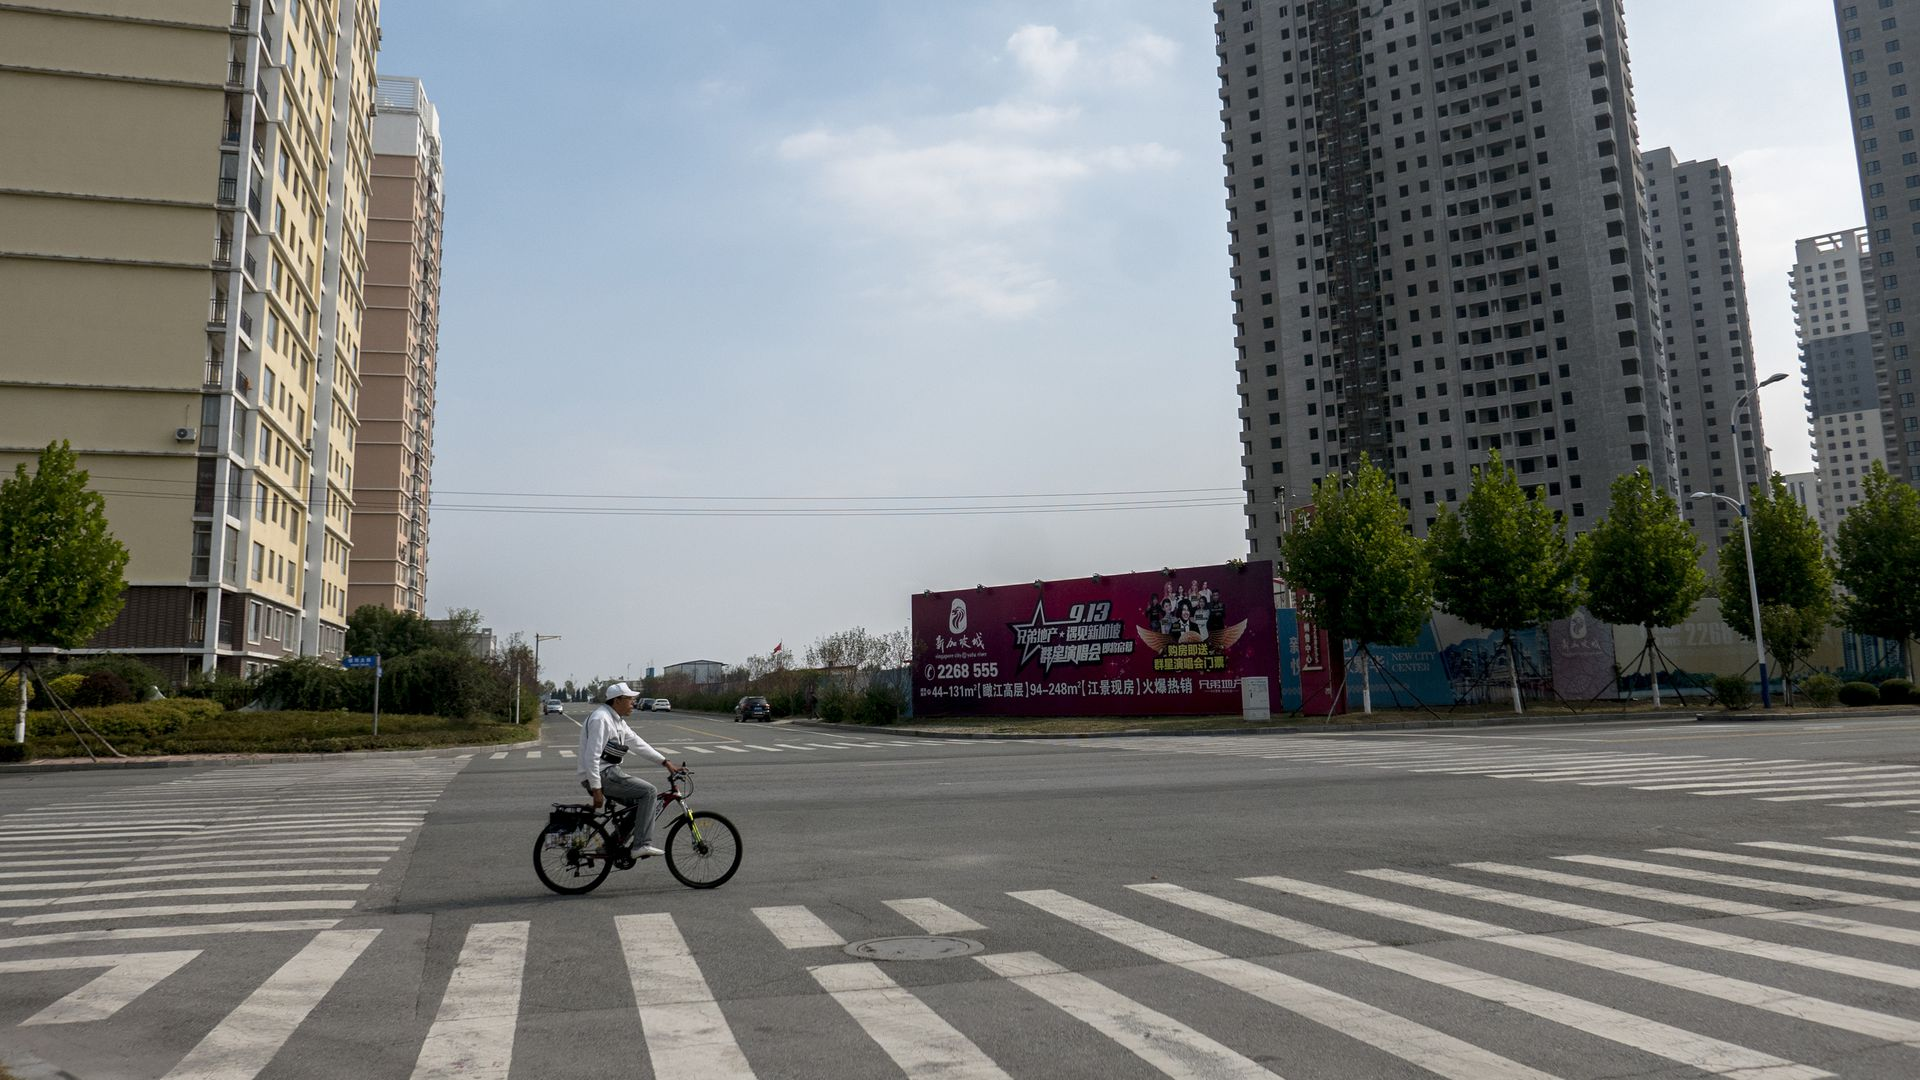 A man rides a bike through an empty city